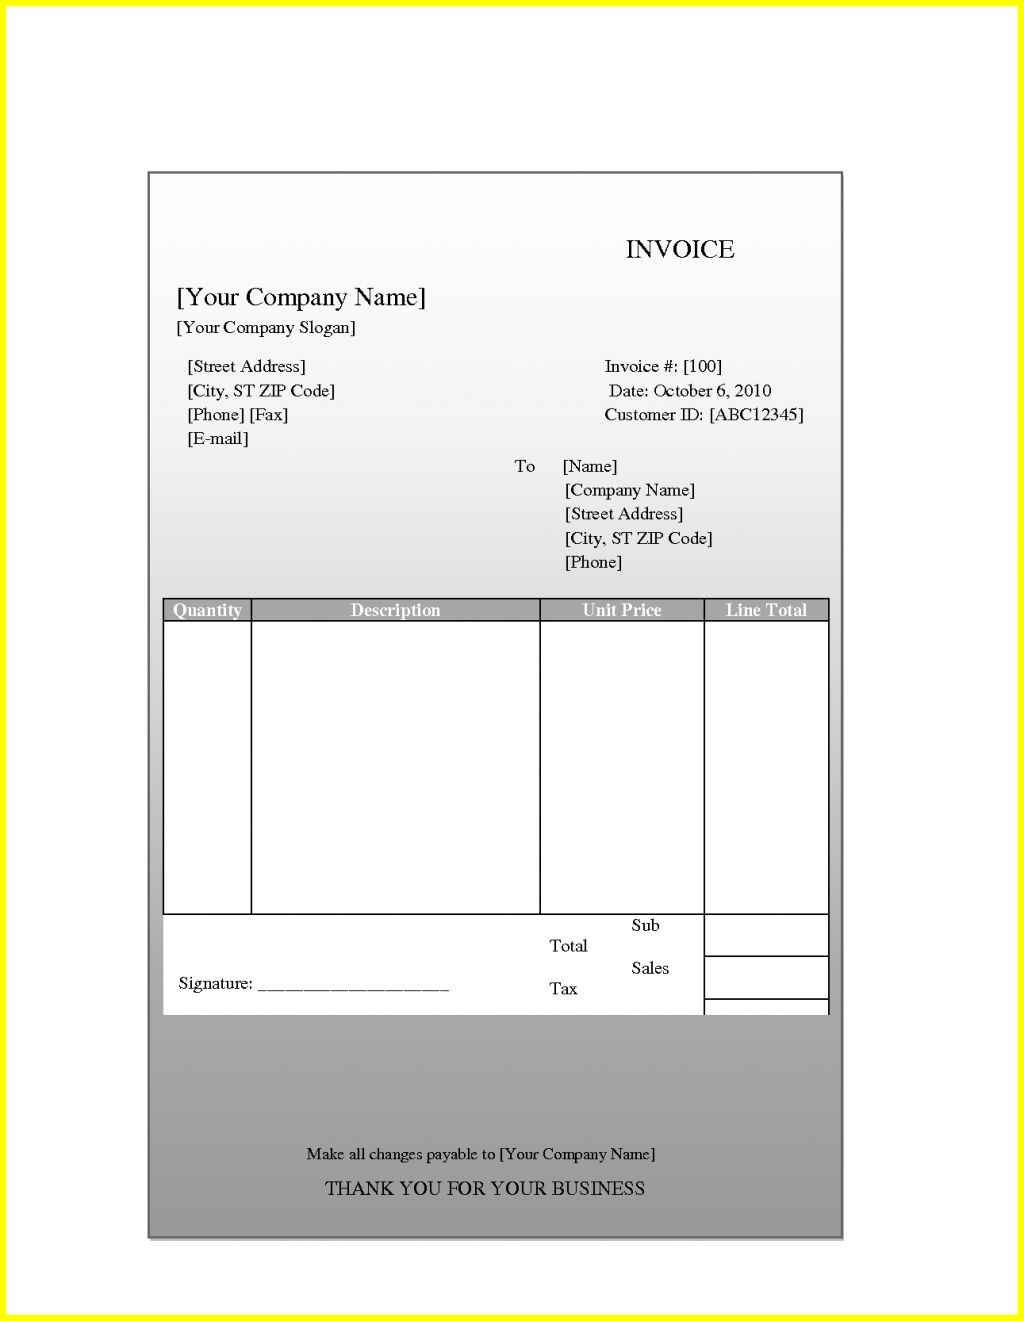 Invoice Template Quickbooks Online Invoice Template Quickbooks Spreadsheet Templates for Busines Spreadsheet Templates for Busines Edit Invoice Template Quickbooks